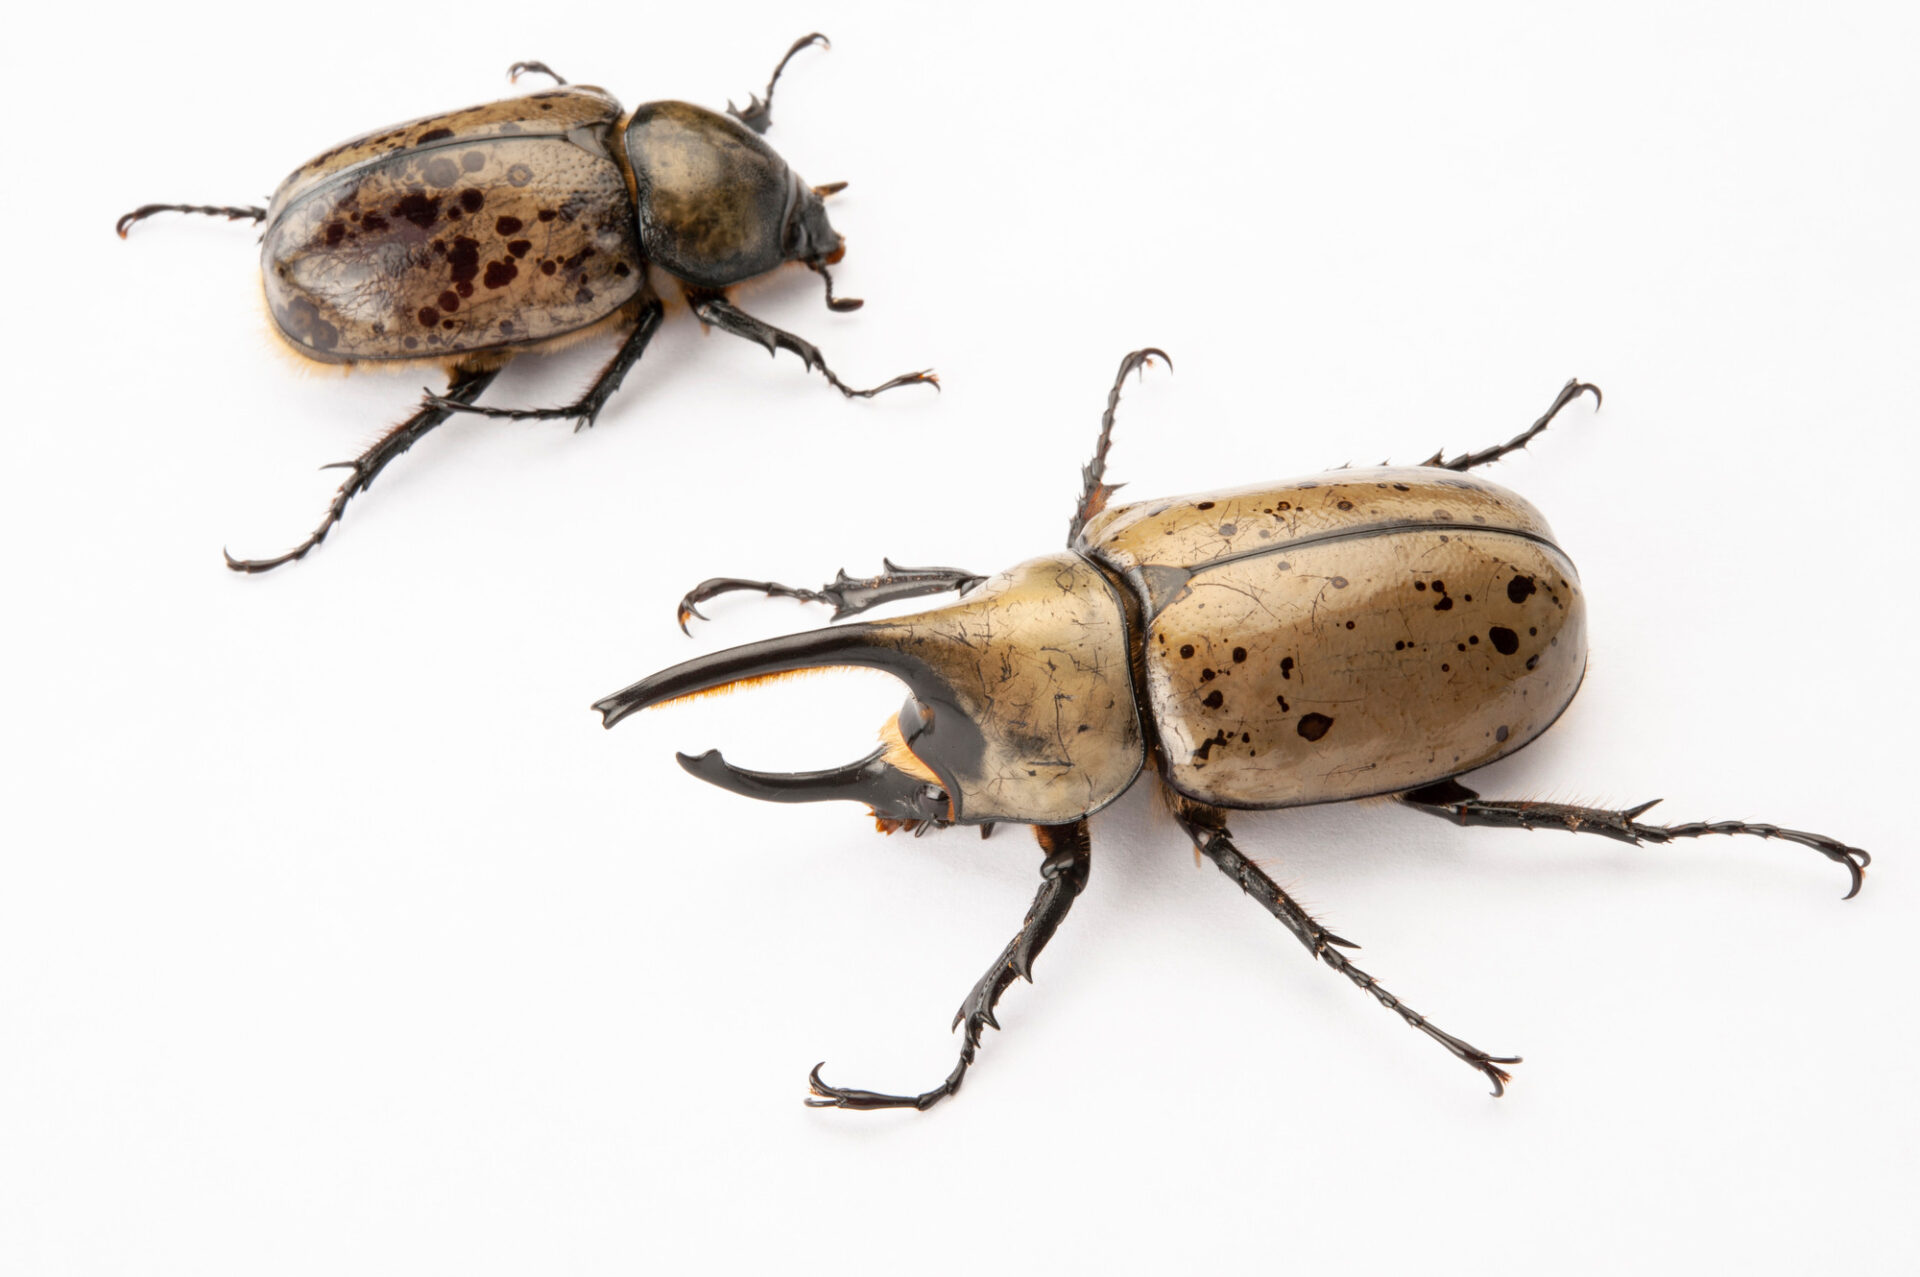 Photo: Grant's hercules beetles (Dynastes granti) at the Insectarium in New Orleans.